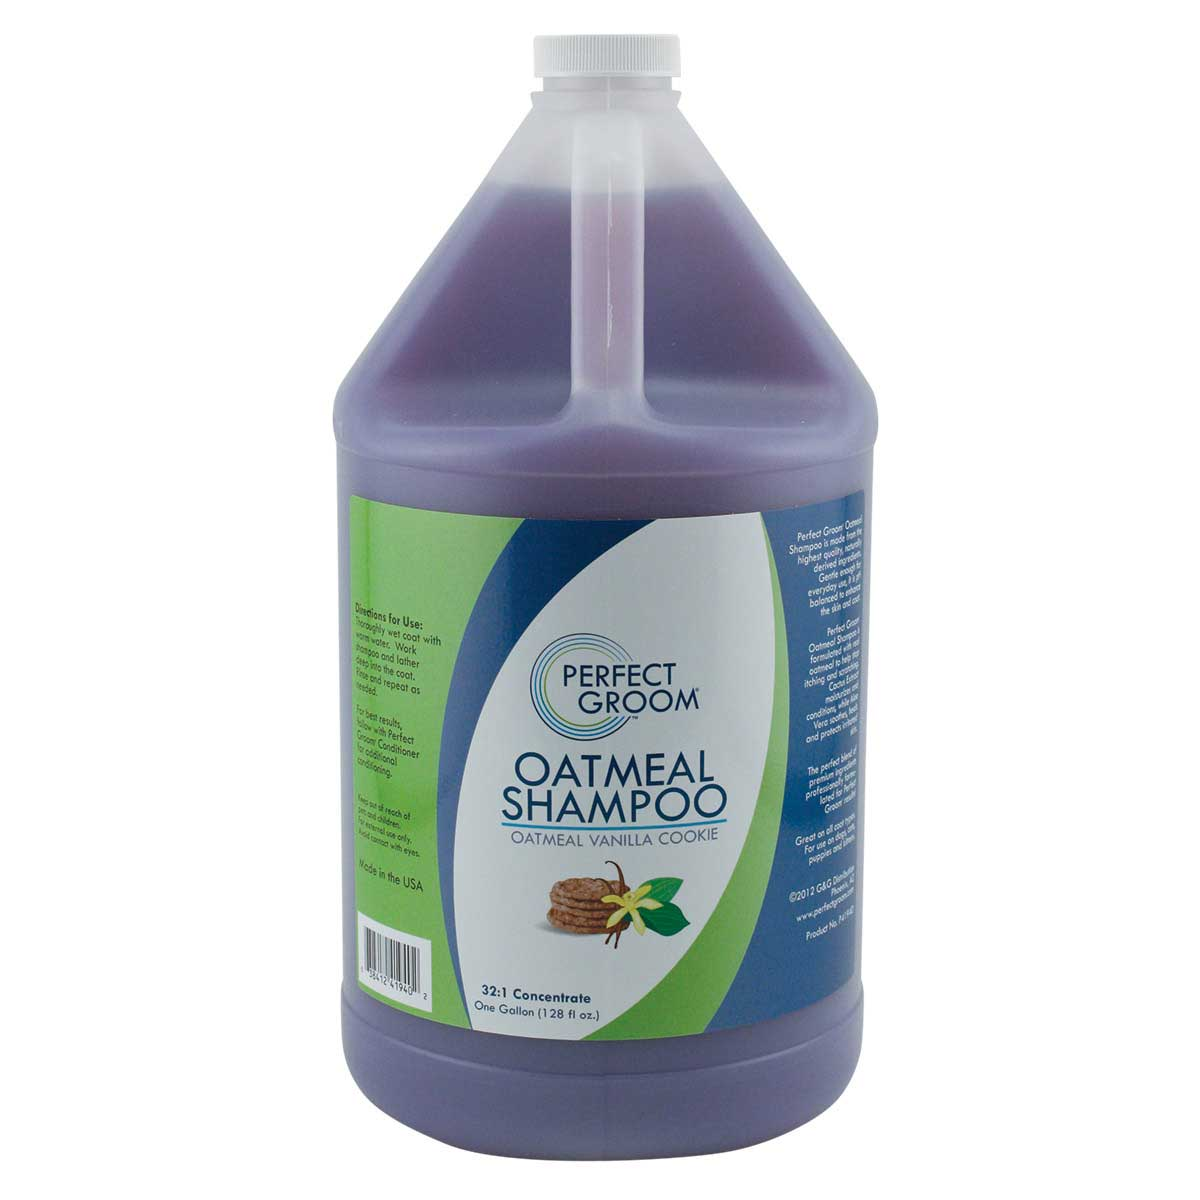 Professional Grooming Perfect Groom Oatmeal Shampoo Concentrated 32:1 Gallon